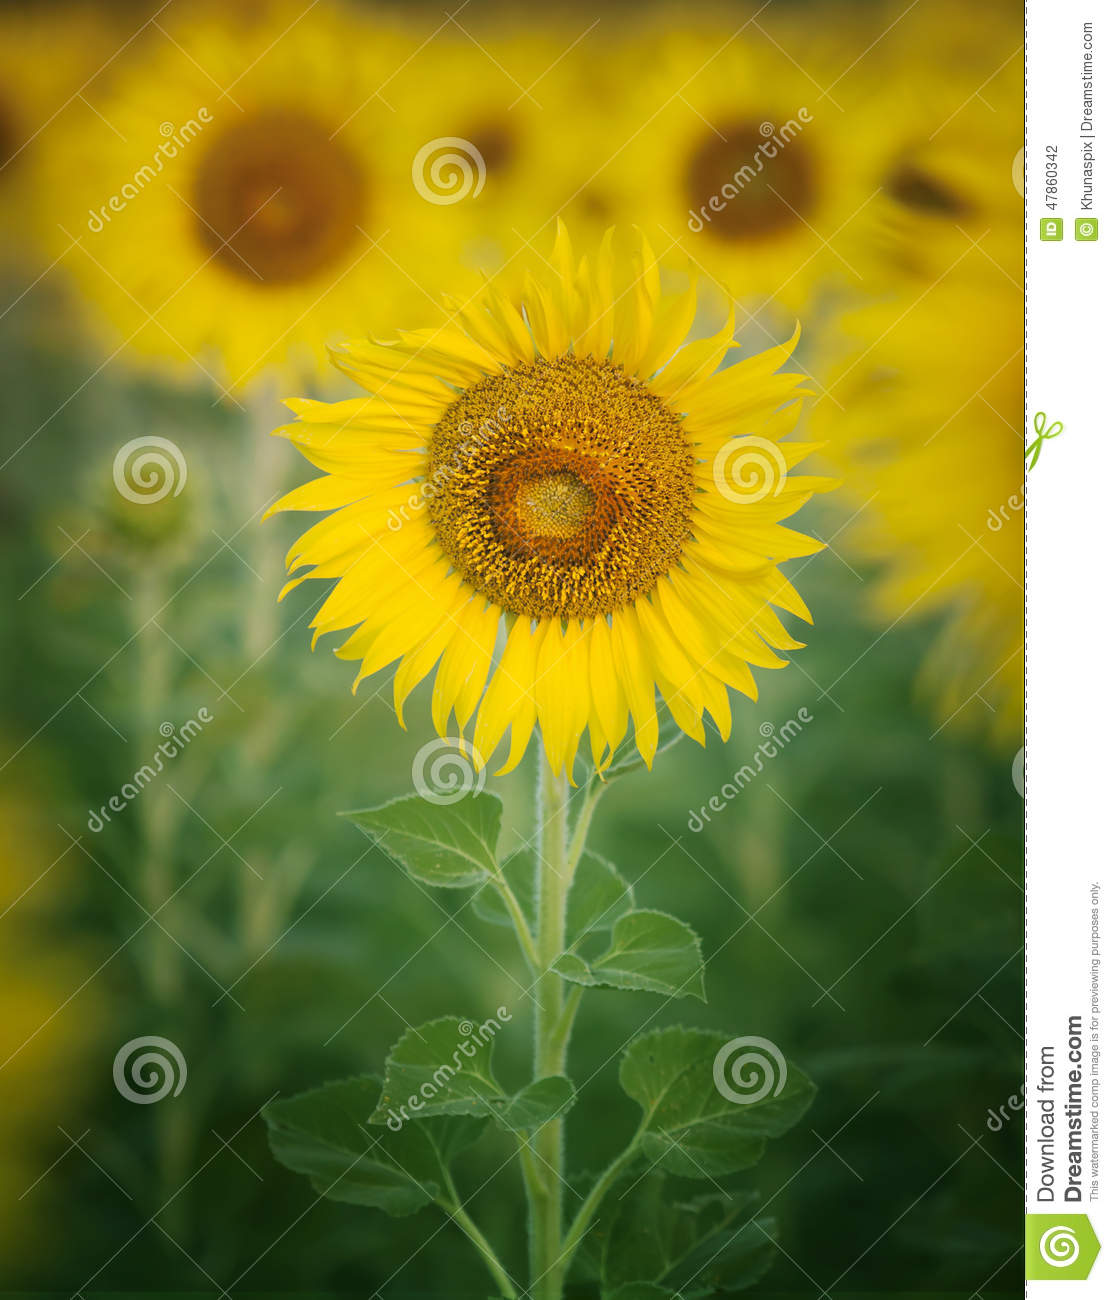 Close up single of beautiful sunflowers petal in flowers frild with copy space use as nature plant background ,backdrop